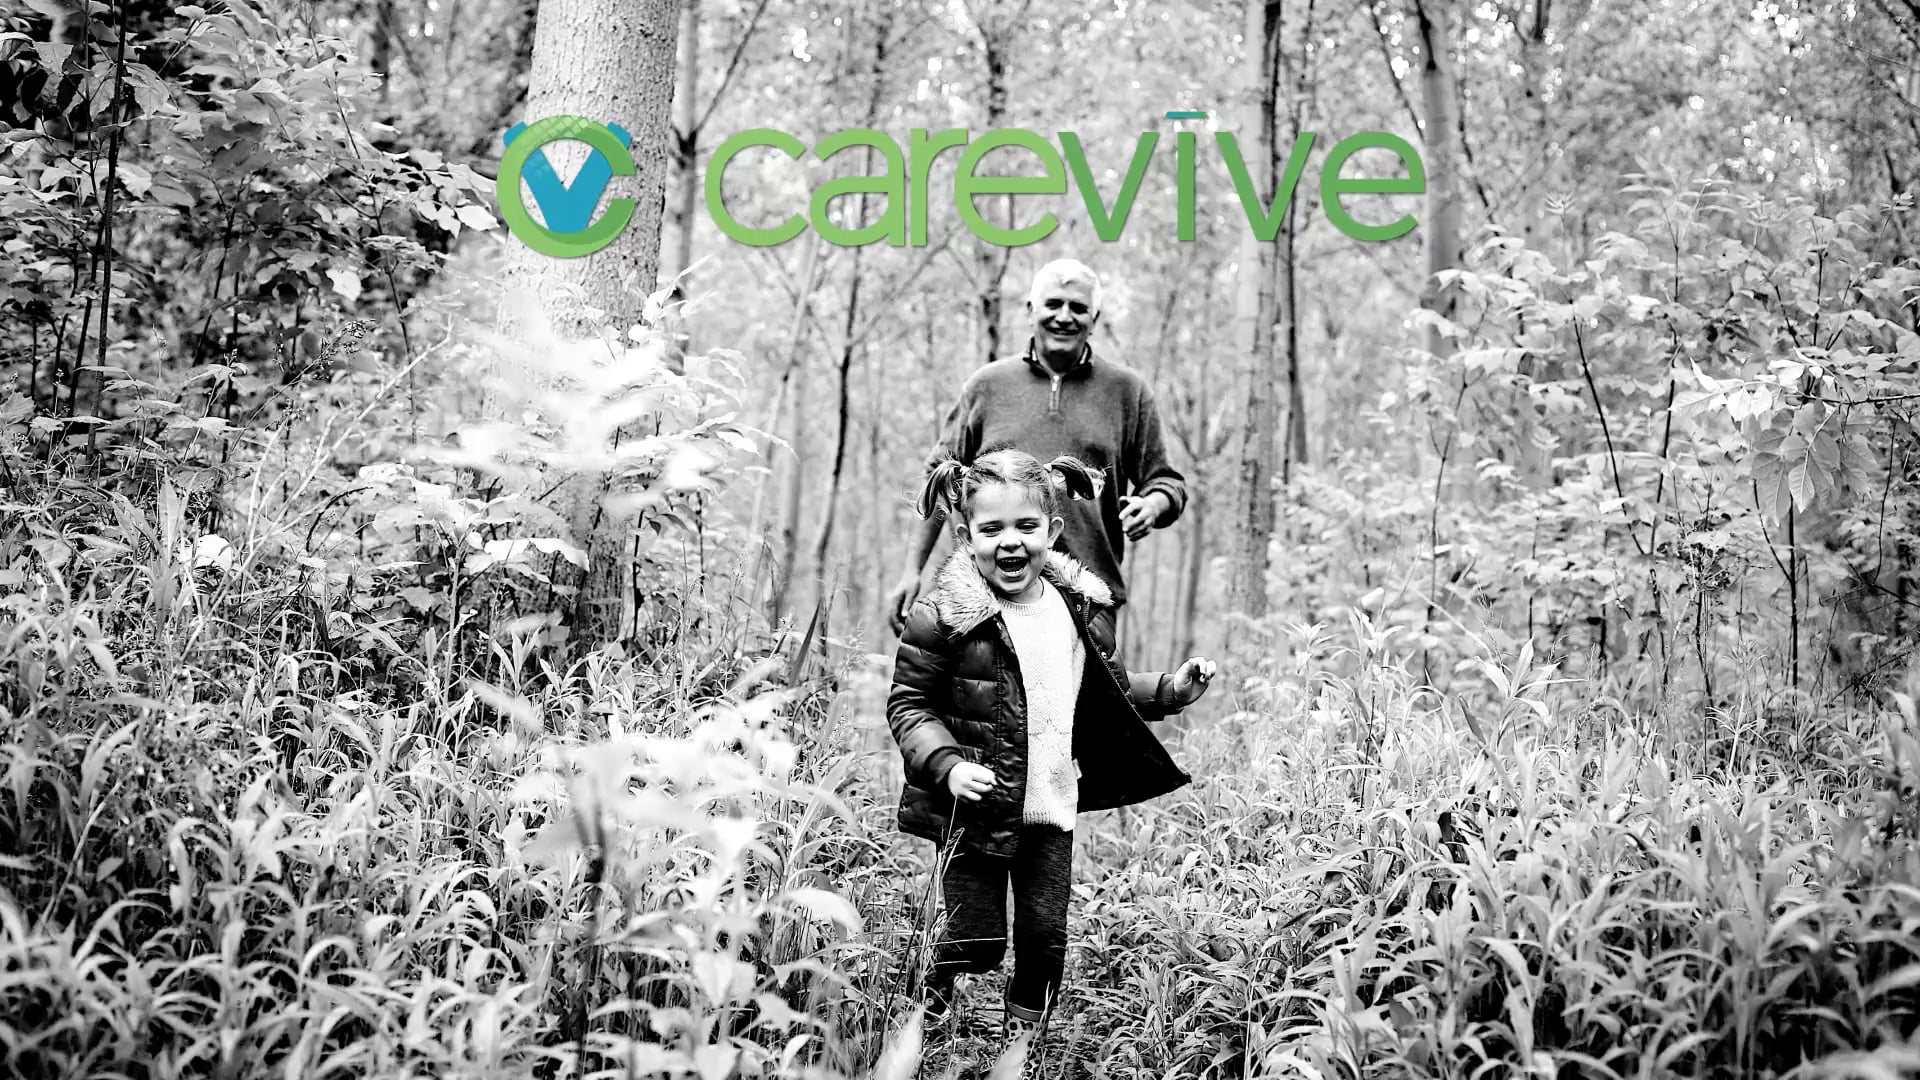 CAREVIVE